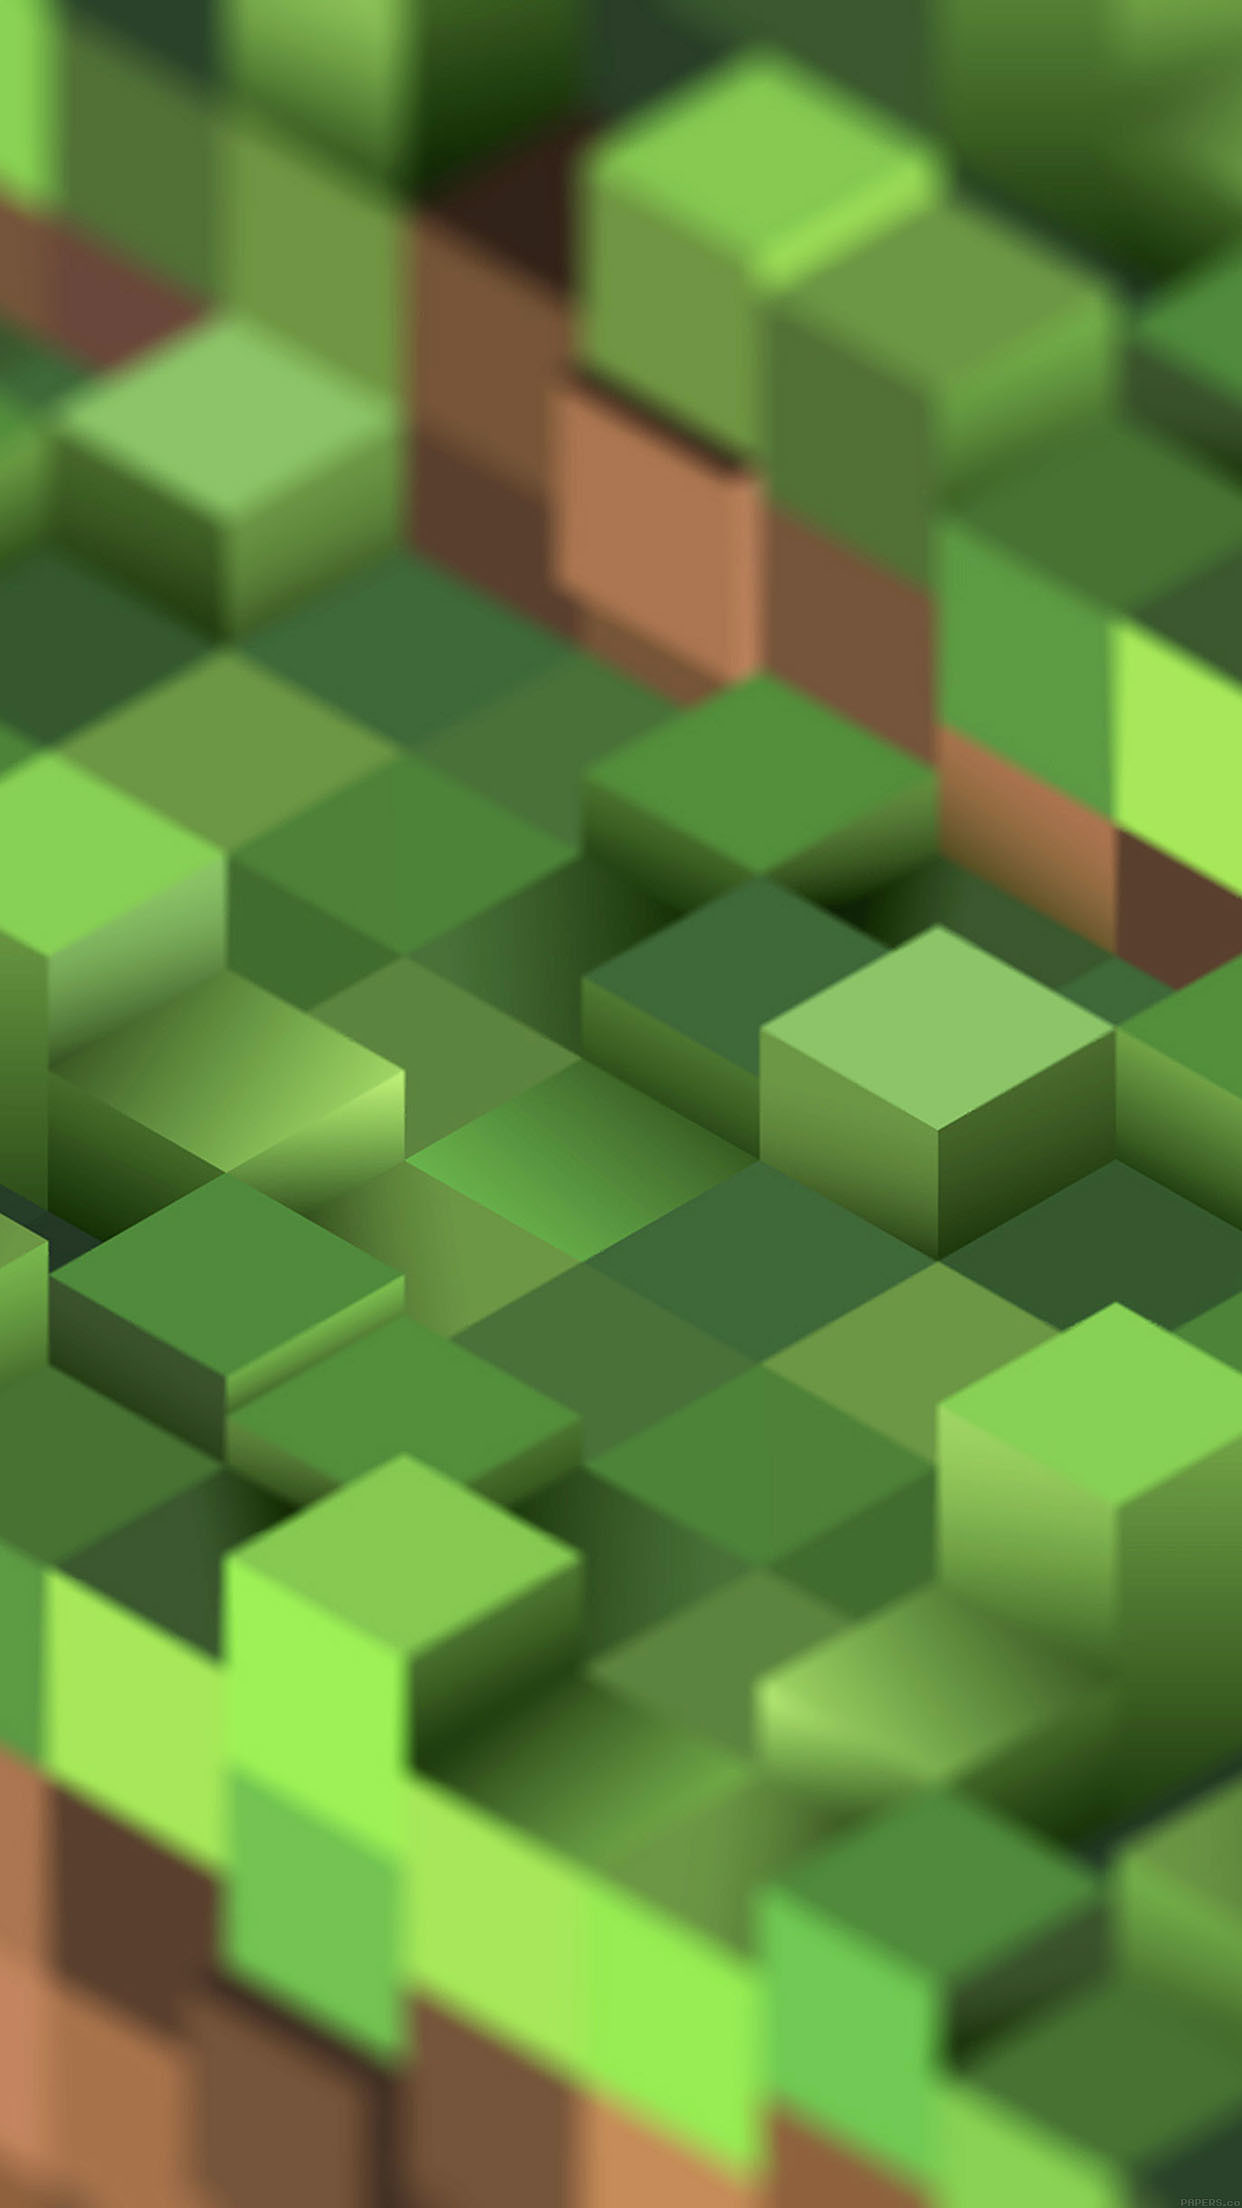 Minecraft Pixels ☆ Find more nerdy #iPhone + #Android #Wallpapers and  #Backgrounds